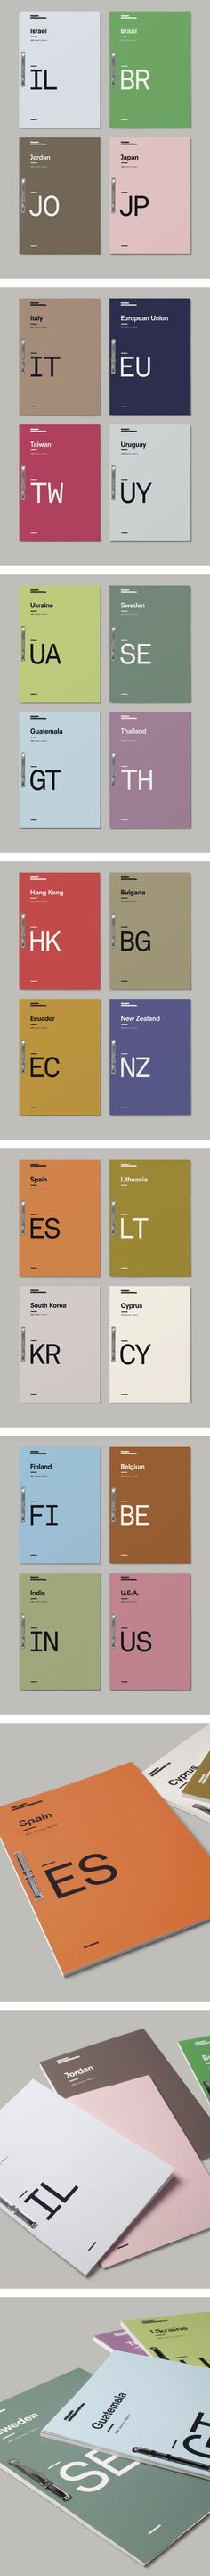 Covers for reports on privacy laws in individual countries